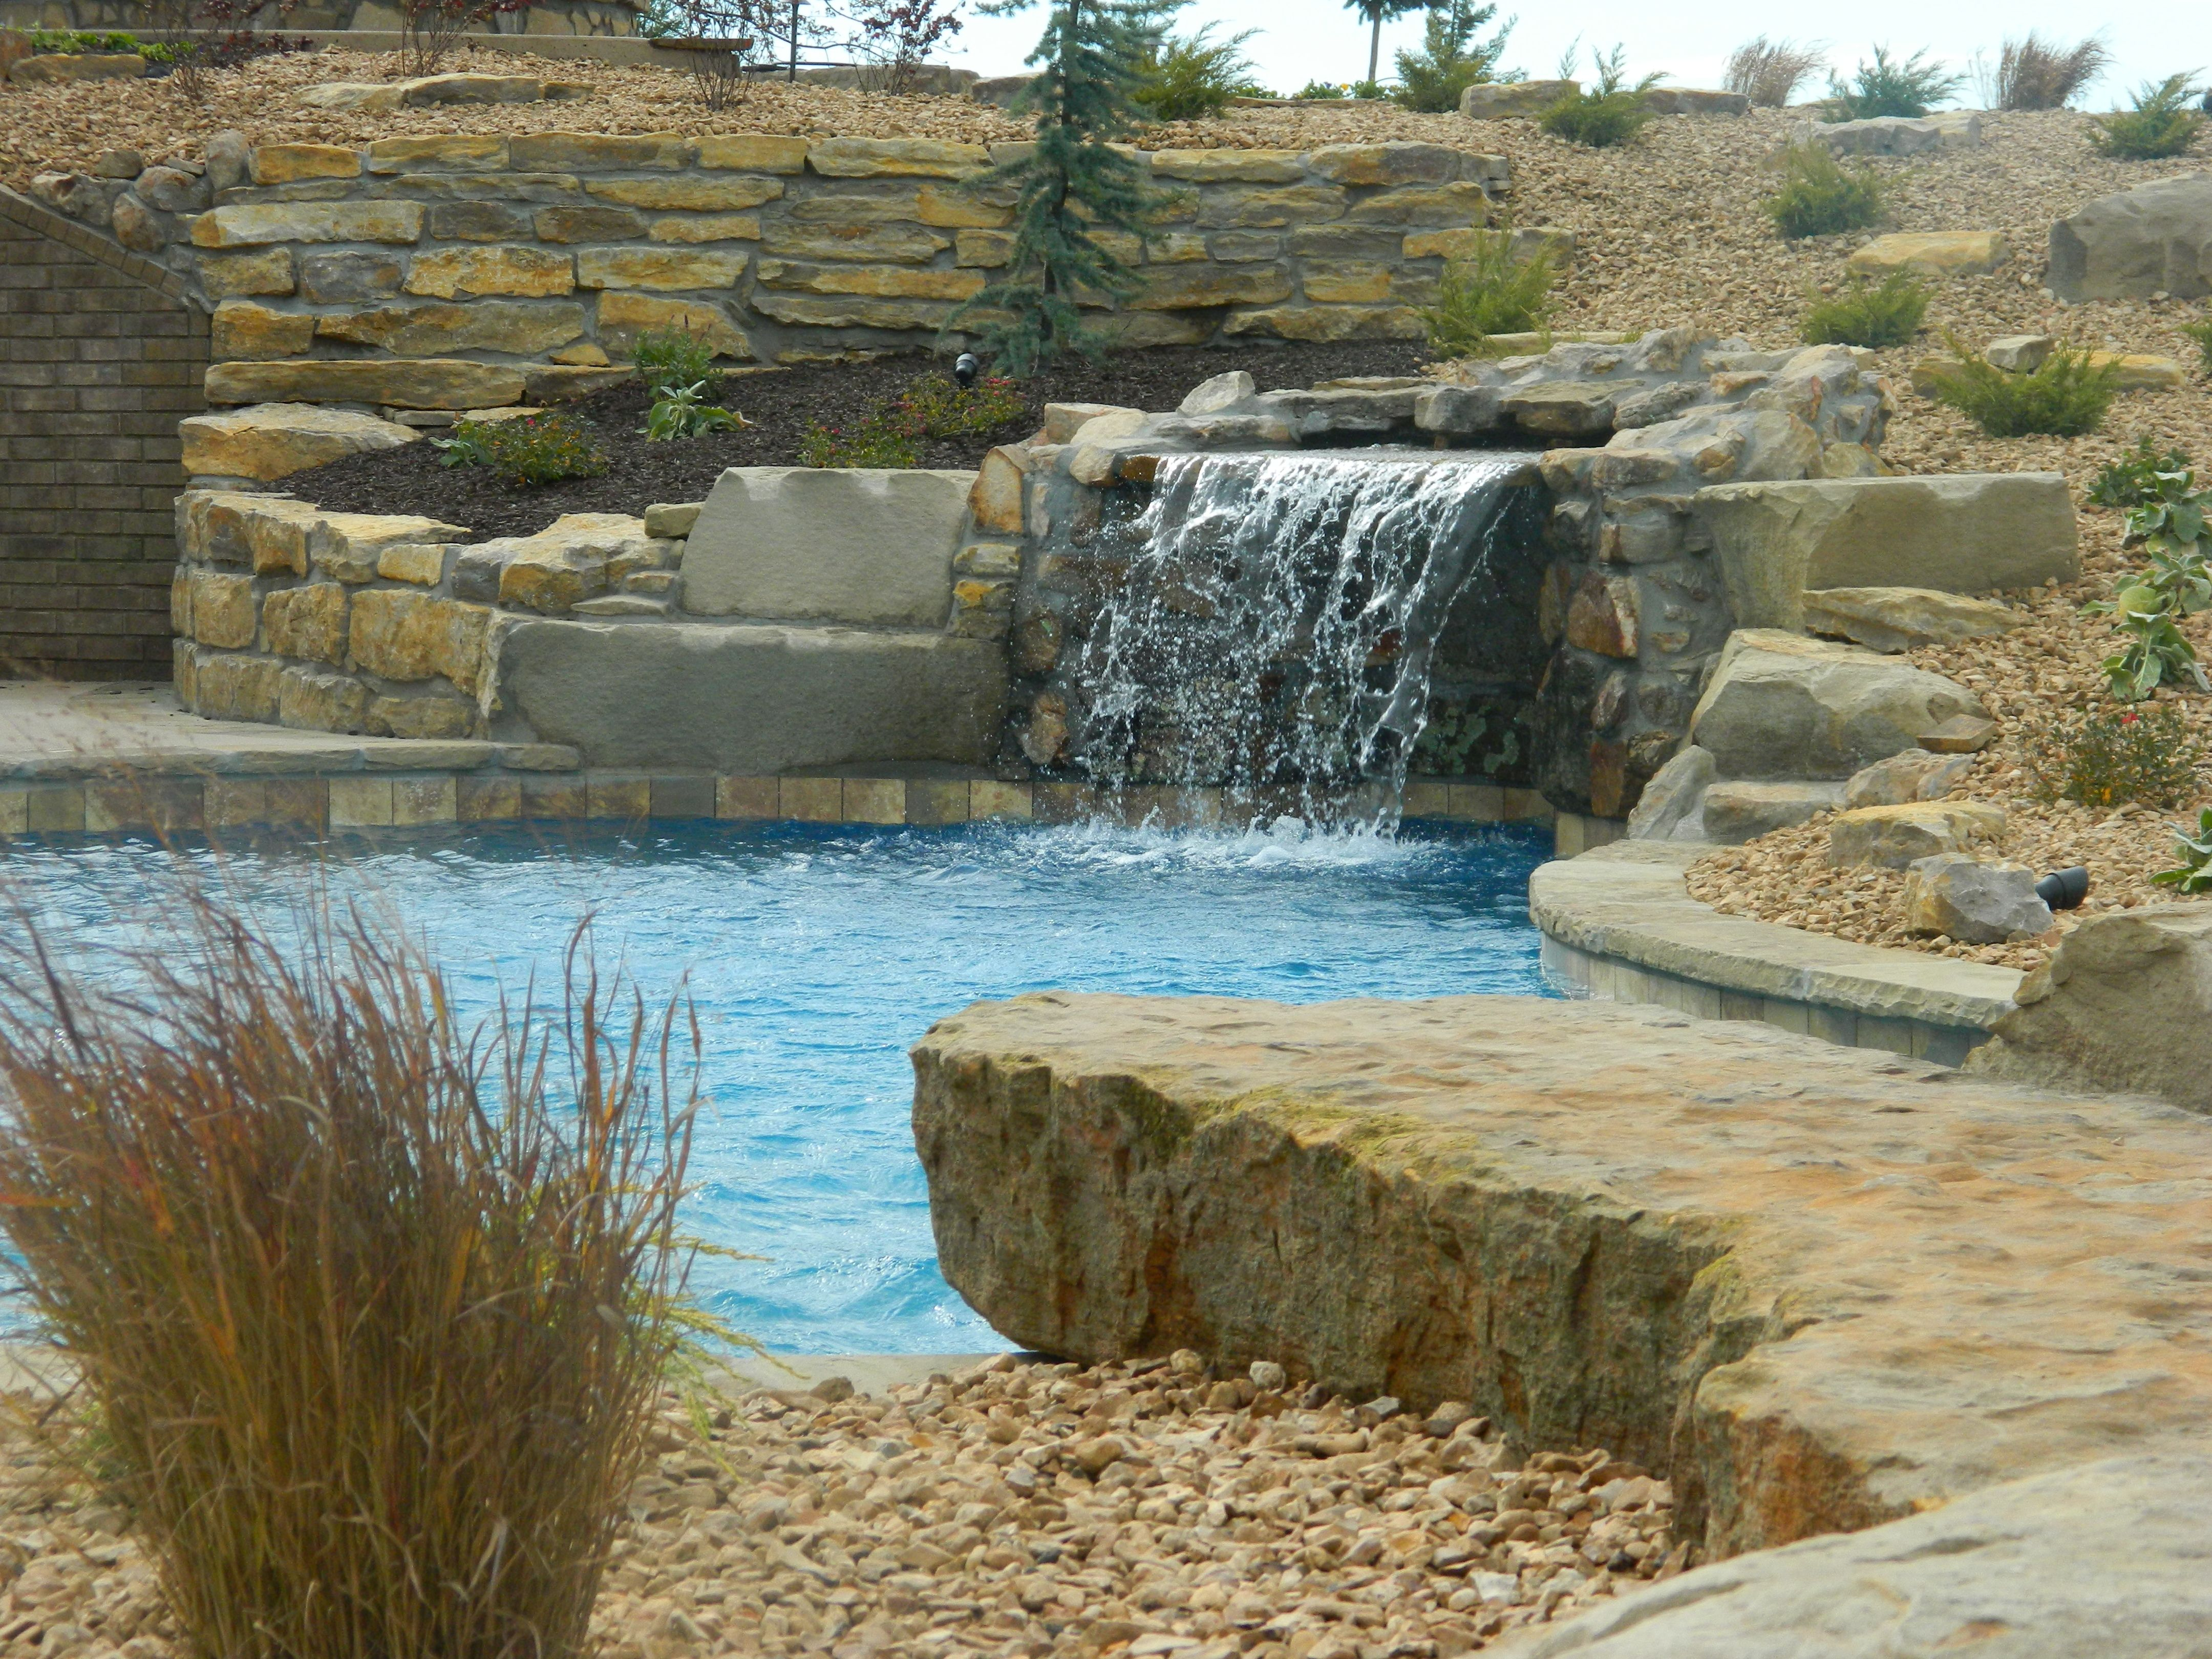 Blue haven pools kc grotto waterfall built into hillside for Building a pool